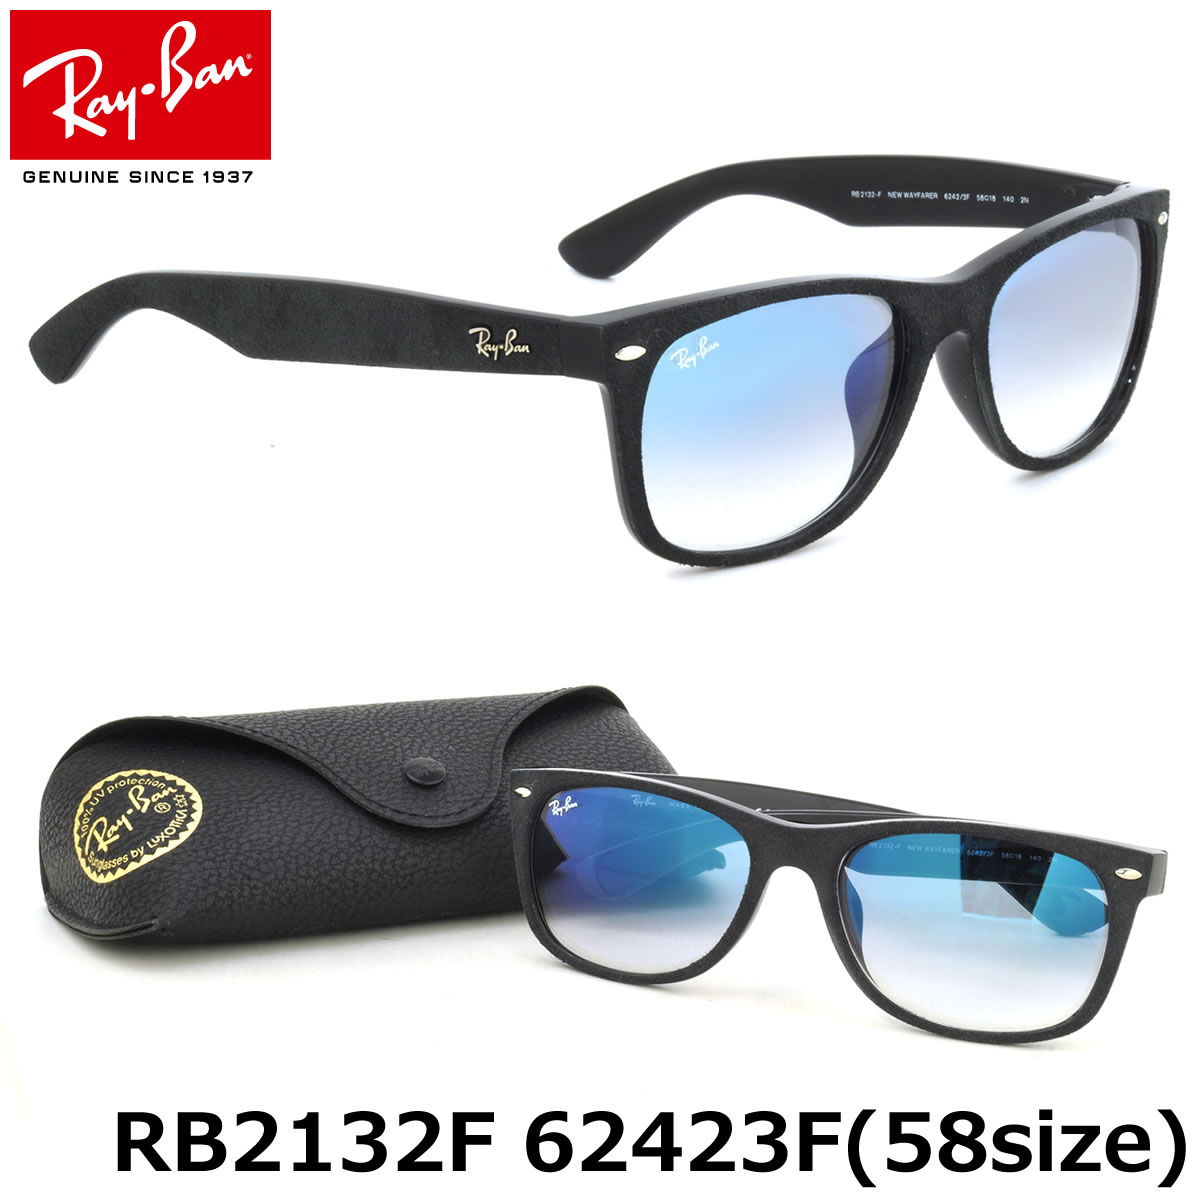 b71d89cae94 RB2132F NEW WAYFARER Pronoun Ryy-byn of a Wayfarer is to stylish  contemporary and is now available. Than the original Wayfarer has become  somewhat a thinner ...